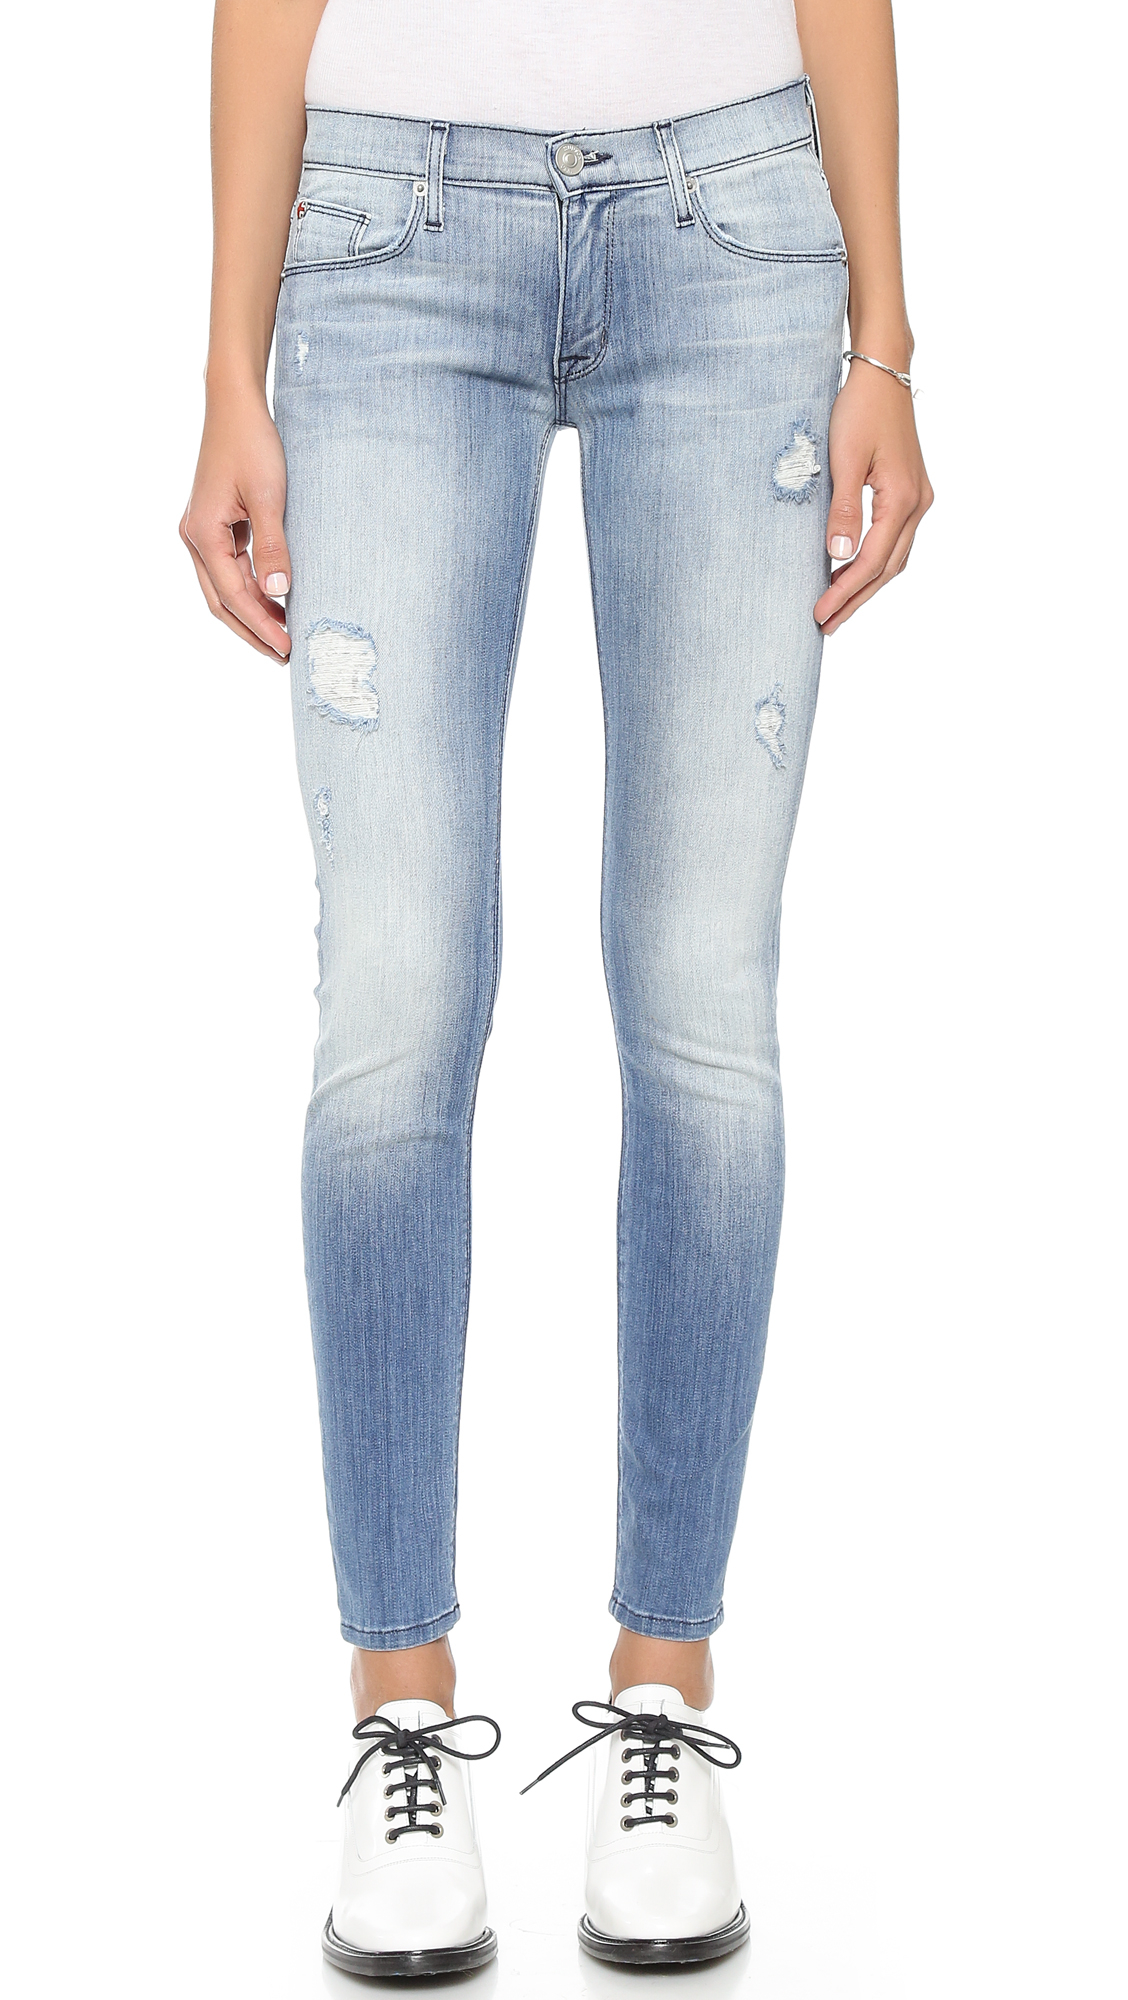 Pair cropped jeans with ankle boots. Cropped jeans are ideal for ankle boots. Choose a pair of cropped jeans that stop about 1 inch ( cm) above your boots.